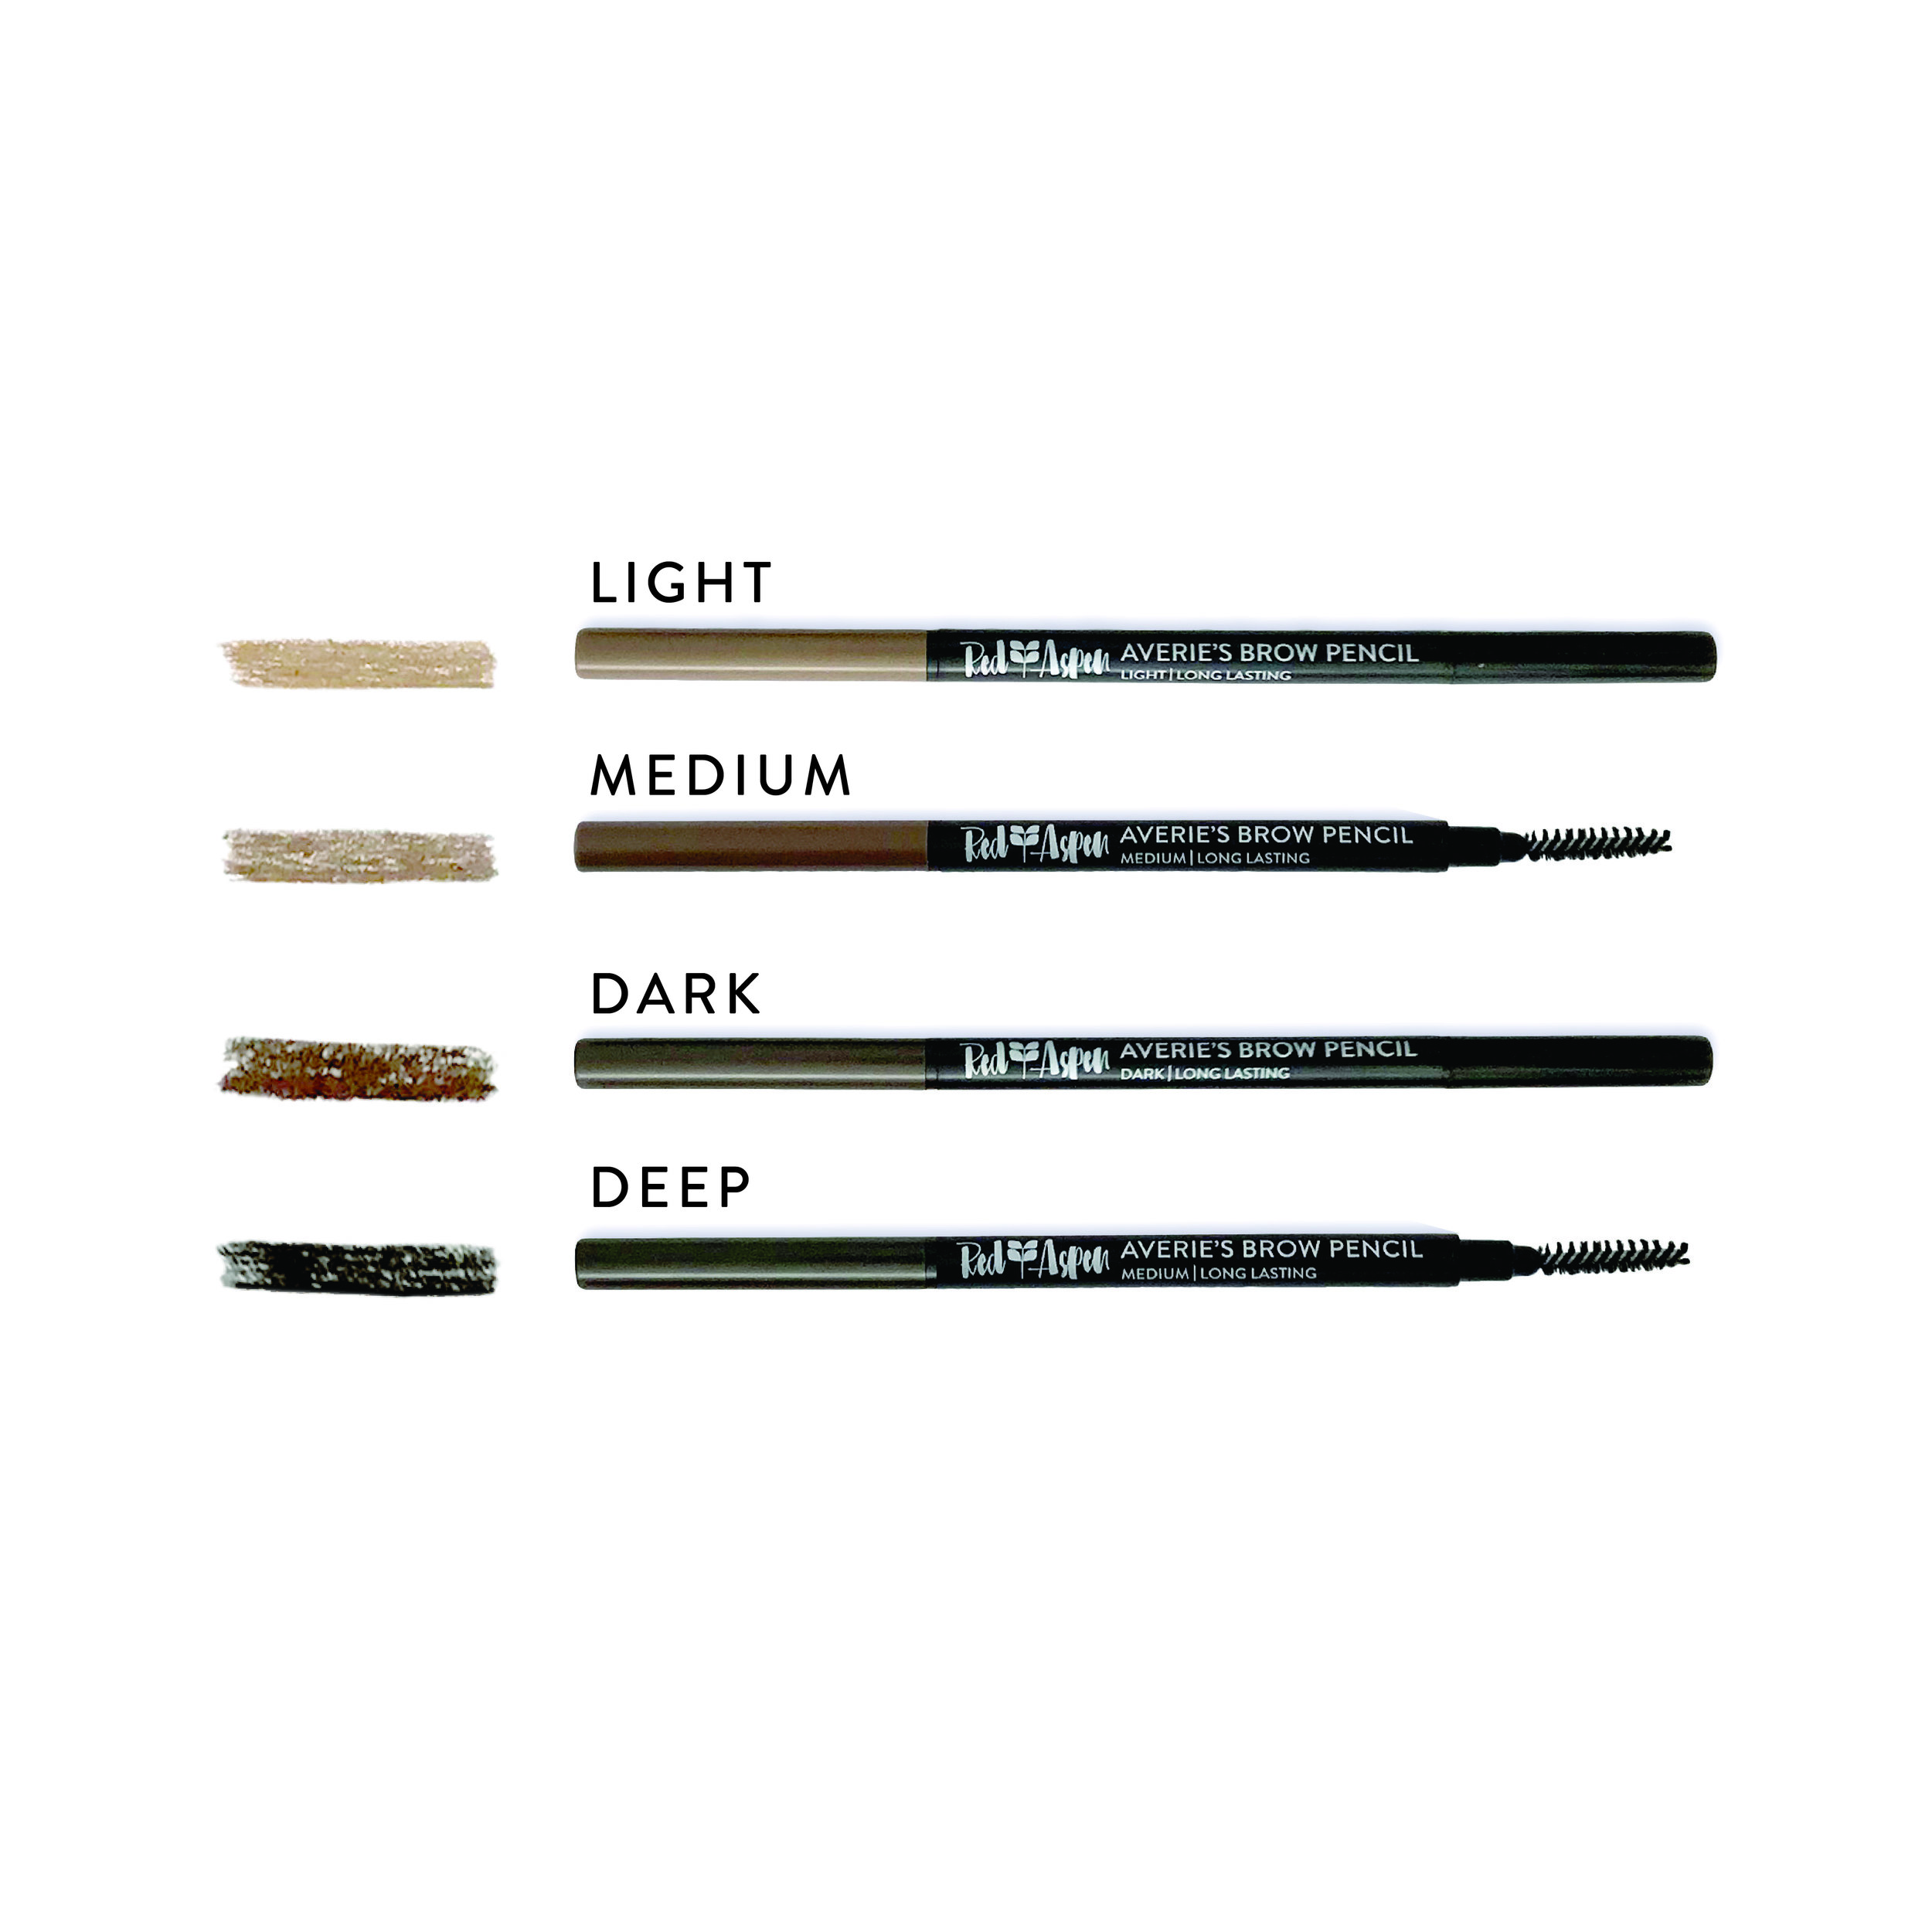 Averie's Brow Pencil - Social Image (35).jpg